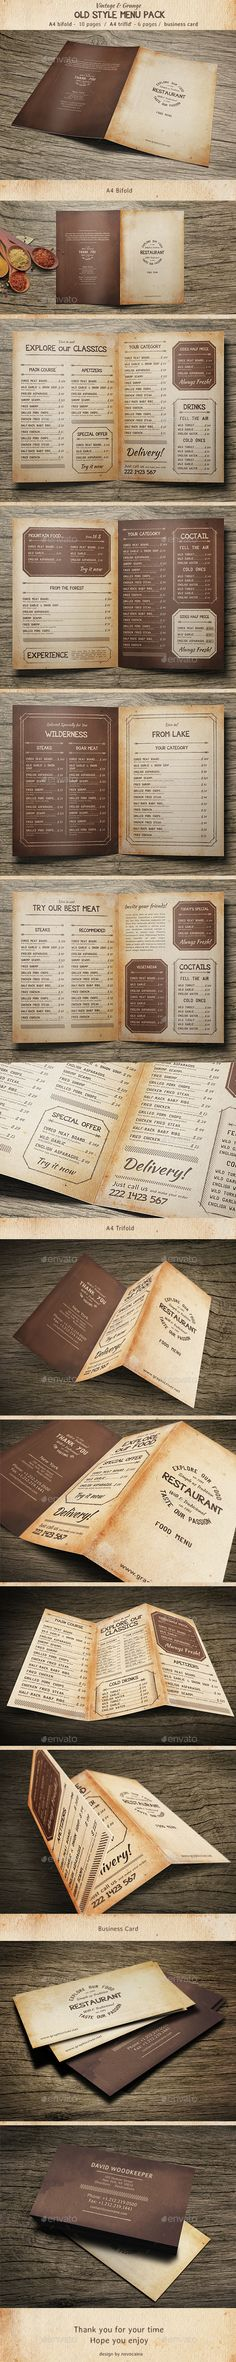 Old Style Menu Pack - Food Menus Print Templates